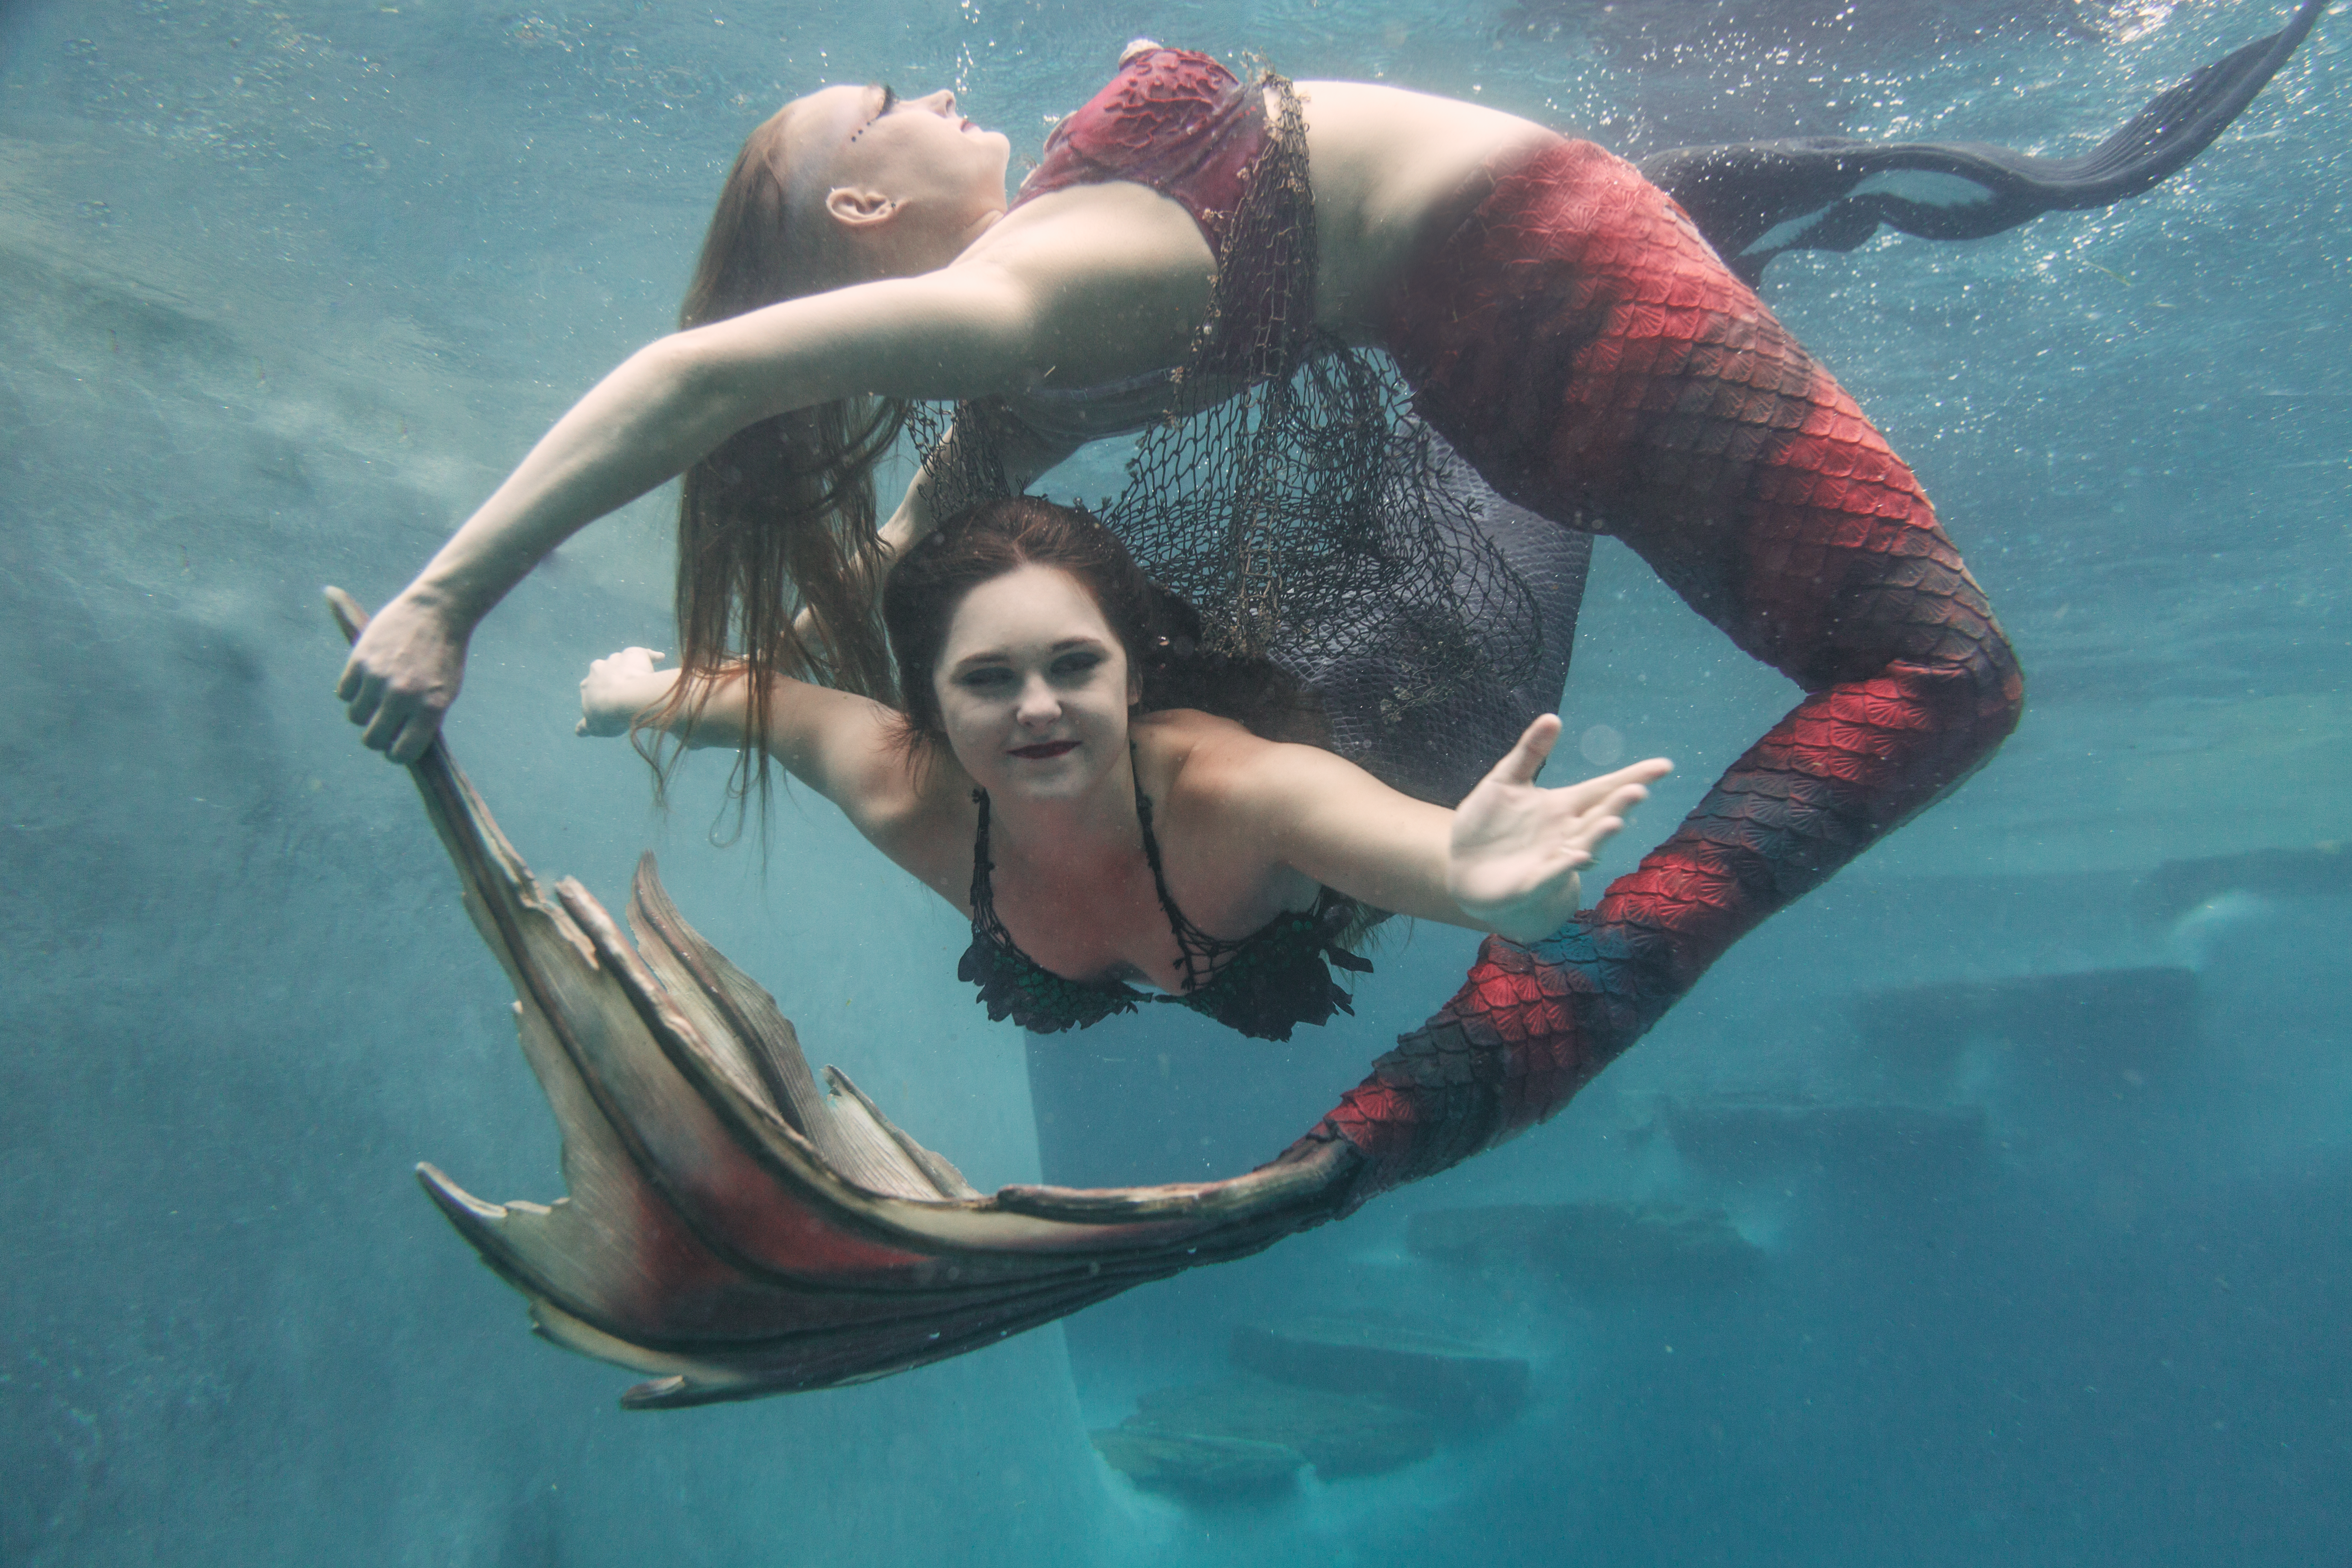 Mermaiding: It's a thing, and it's coming to a pool near you